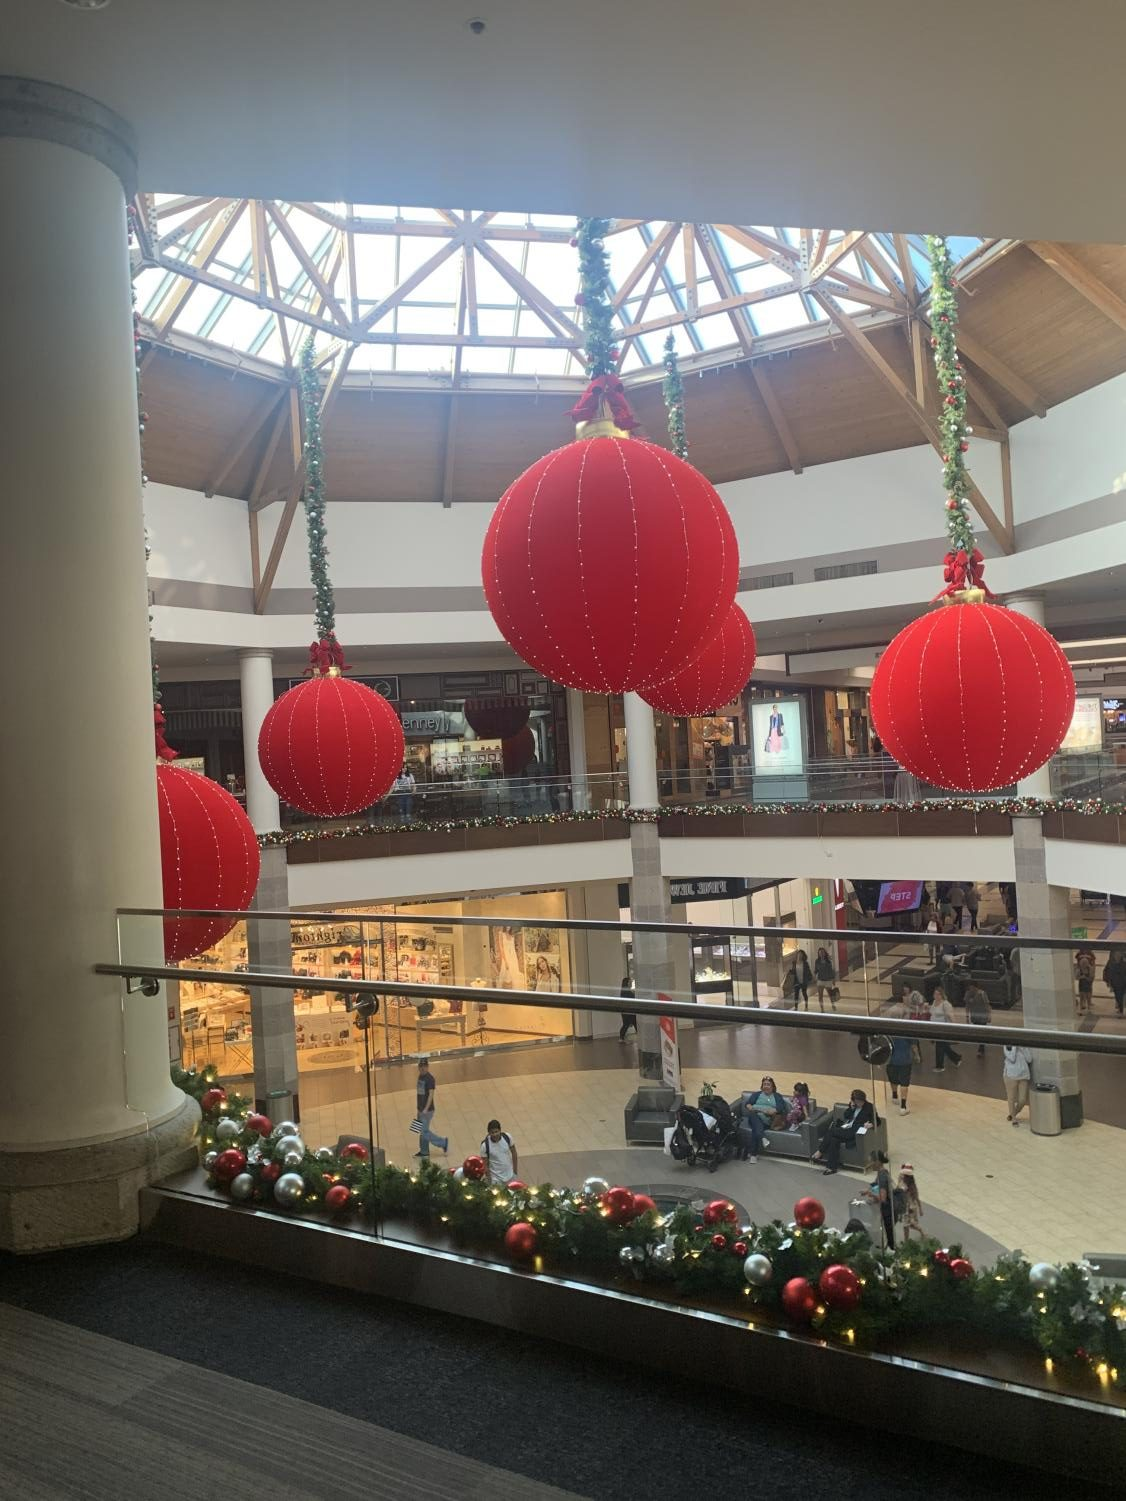 Brea Mall during November, proving the rush to get to Christmas.